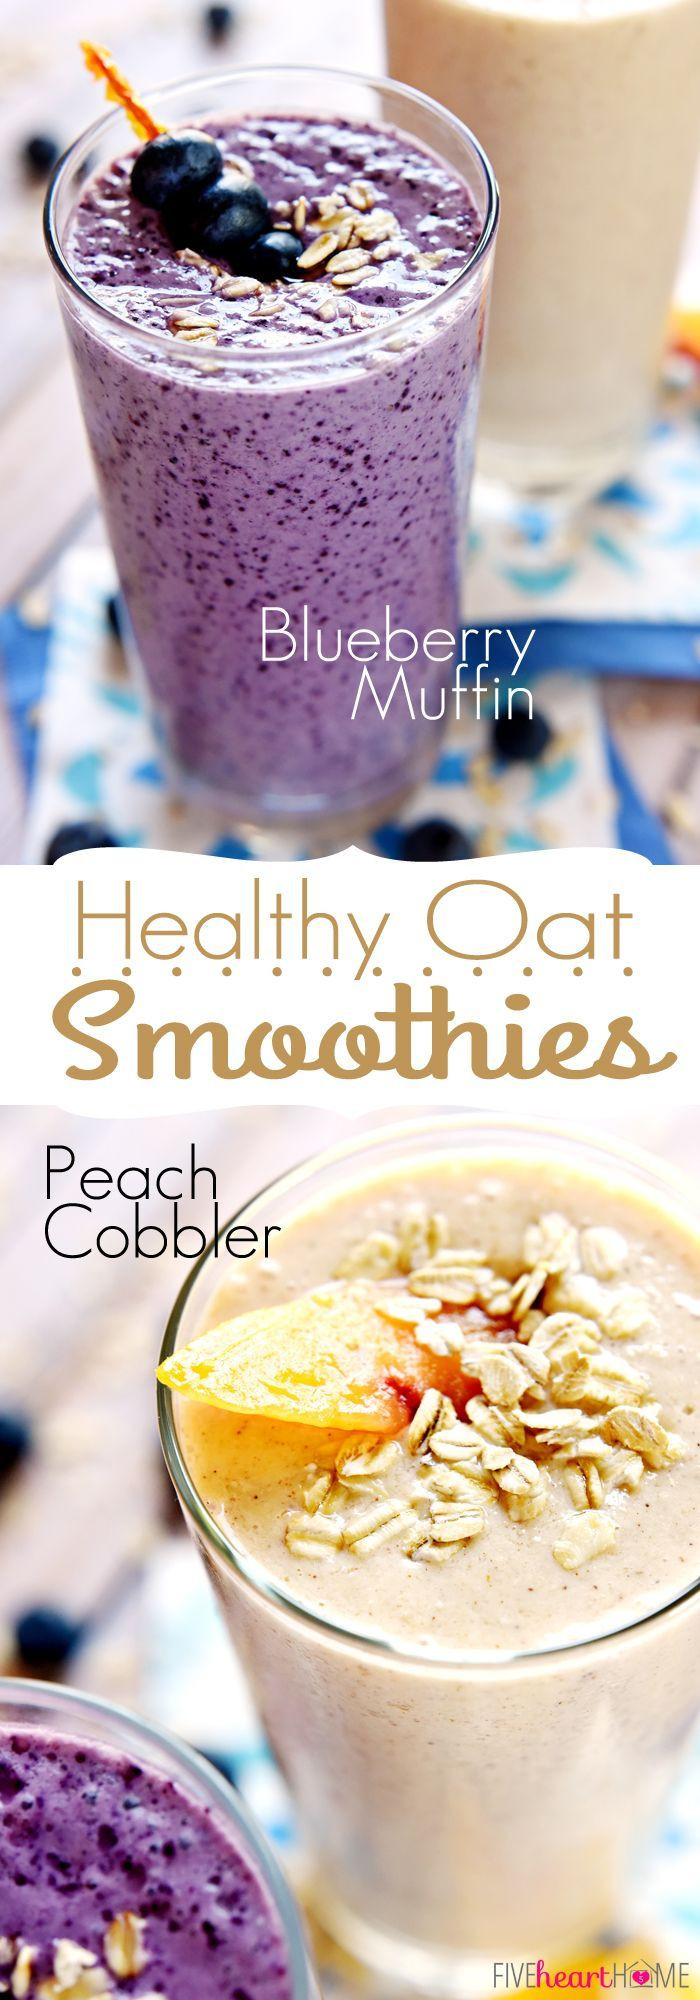 Healthy Filling Smoothies  Healthy Oat Smoothies Blueberry Muffin & Peach Cobbler